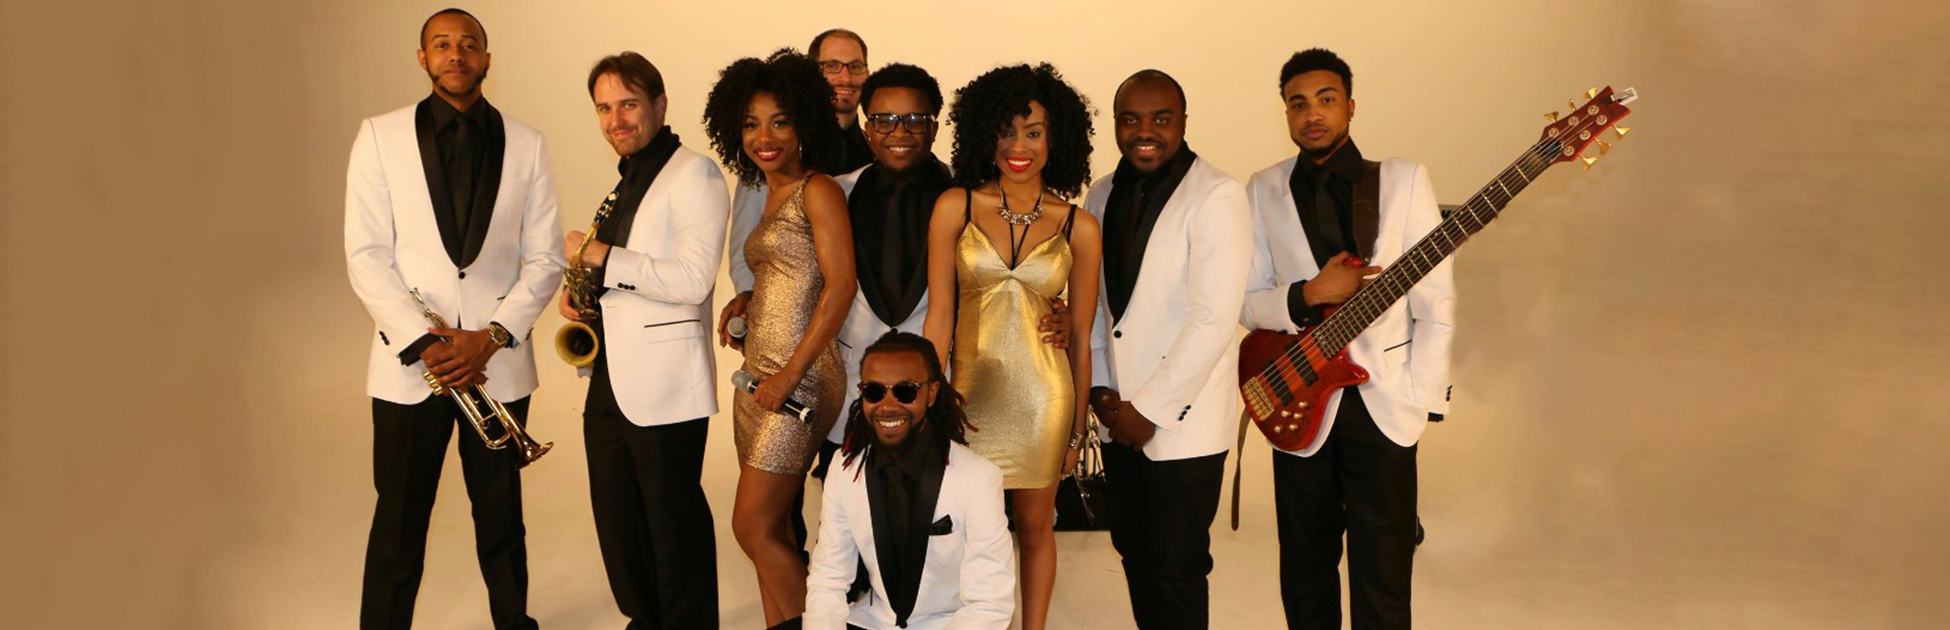 Image of ATLANTA PLEASURE BAND